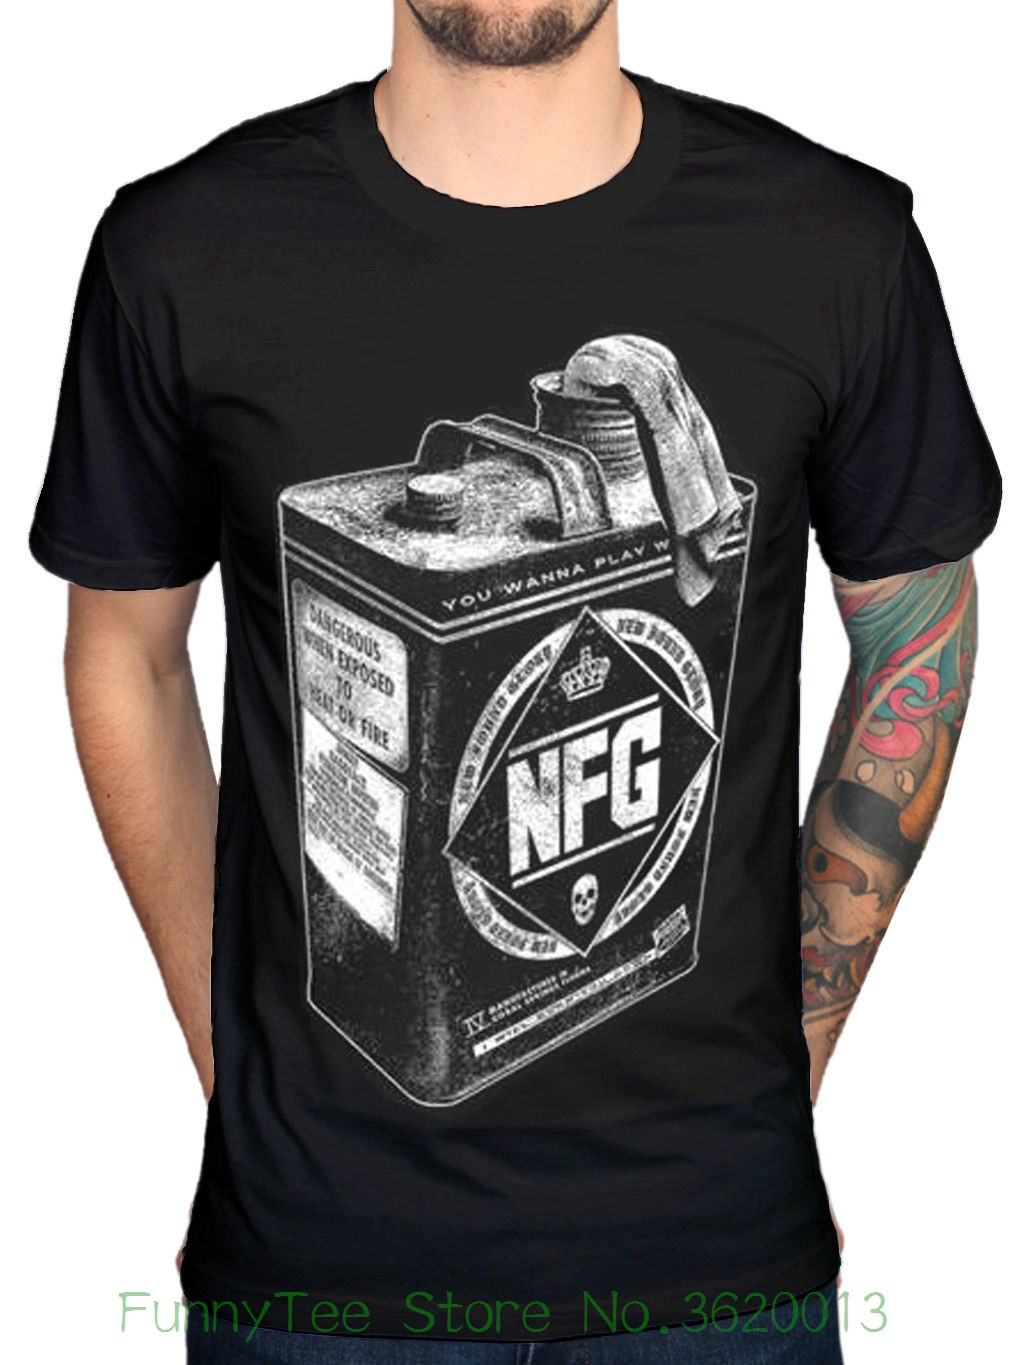 Official New Found Glory Pyro T-shirt New Pop Punk Rock Band Merchandise